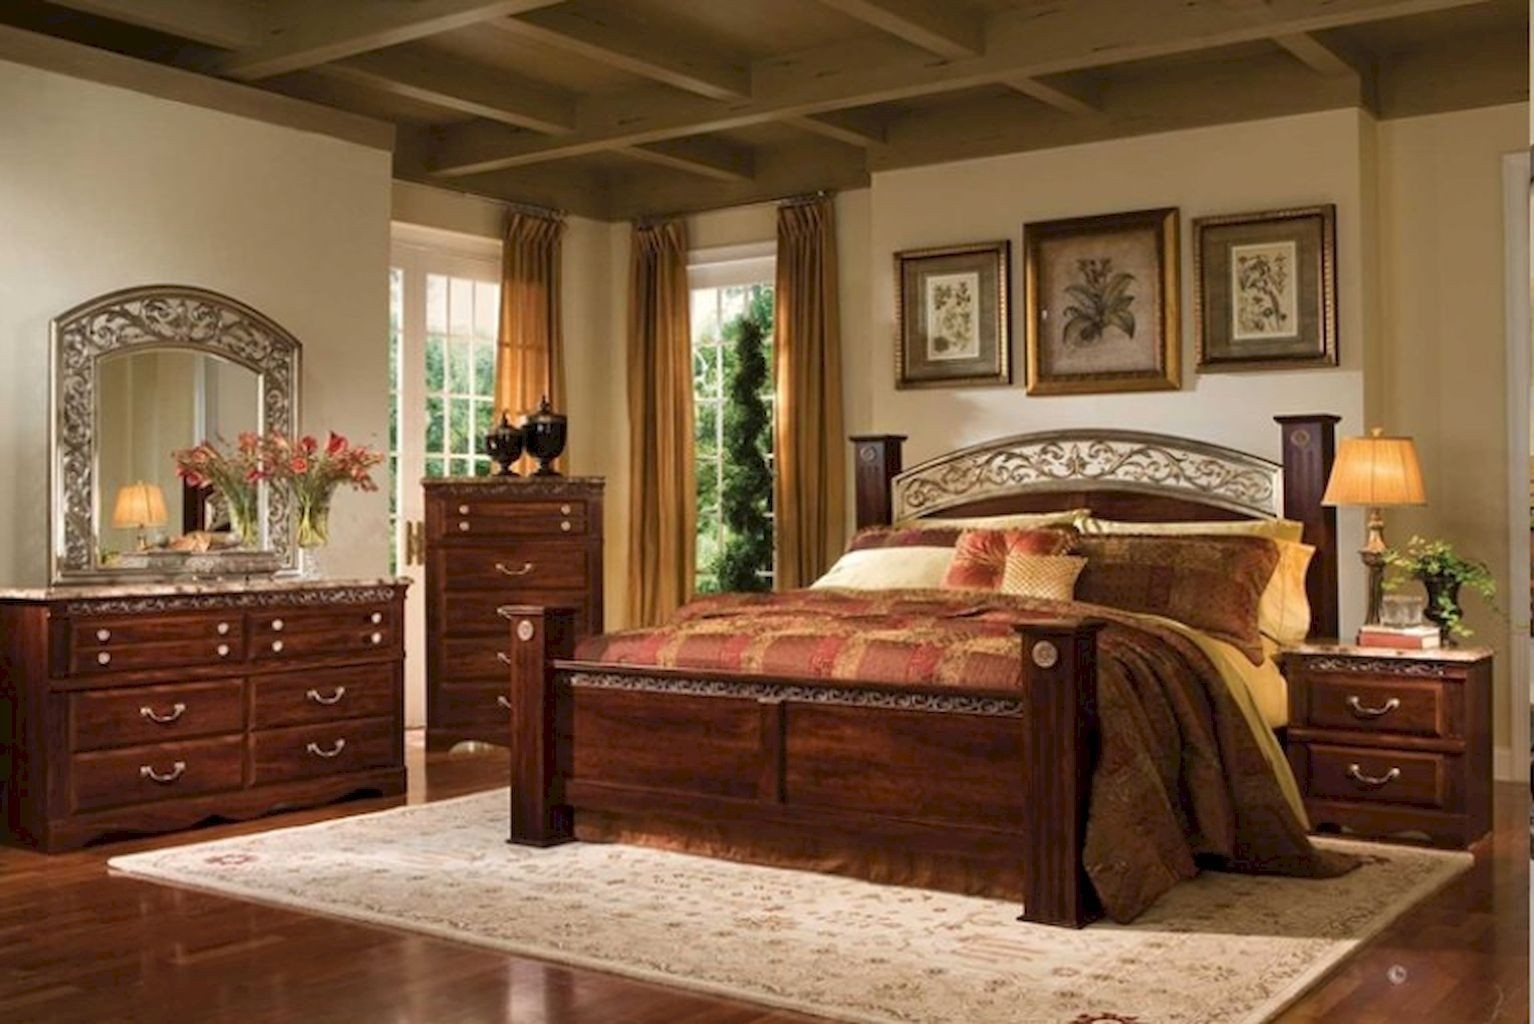 King size canopy bedroom sets 4 & Four Post King Size Bedroom Sets - Foter